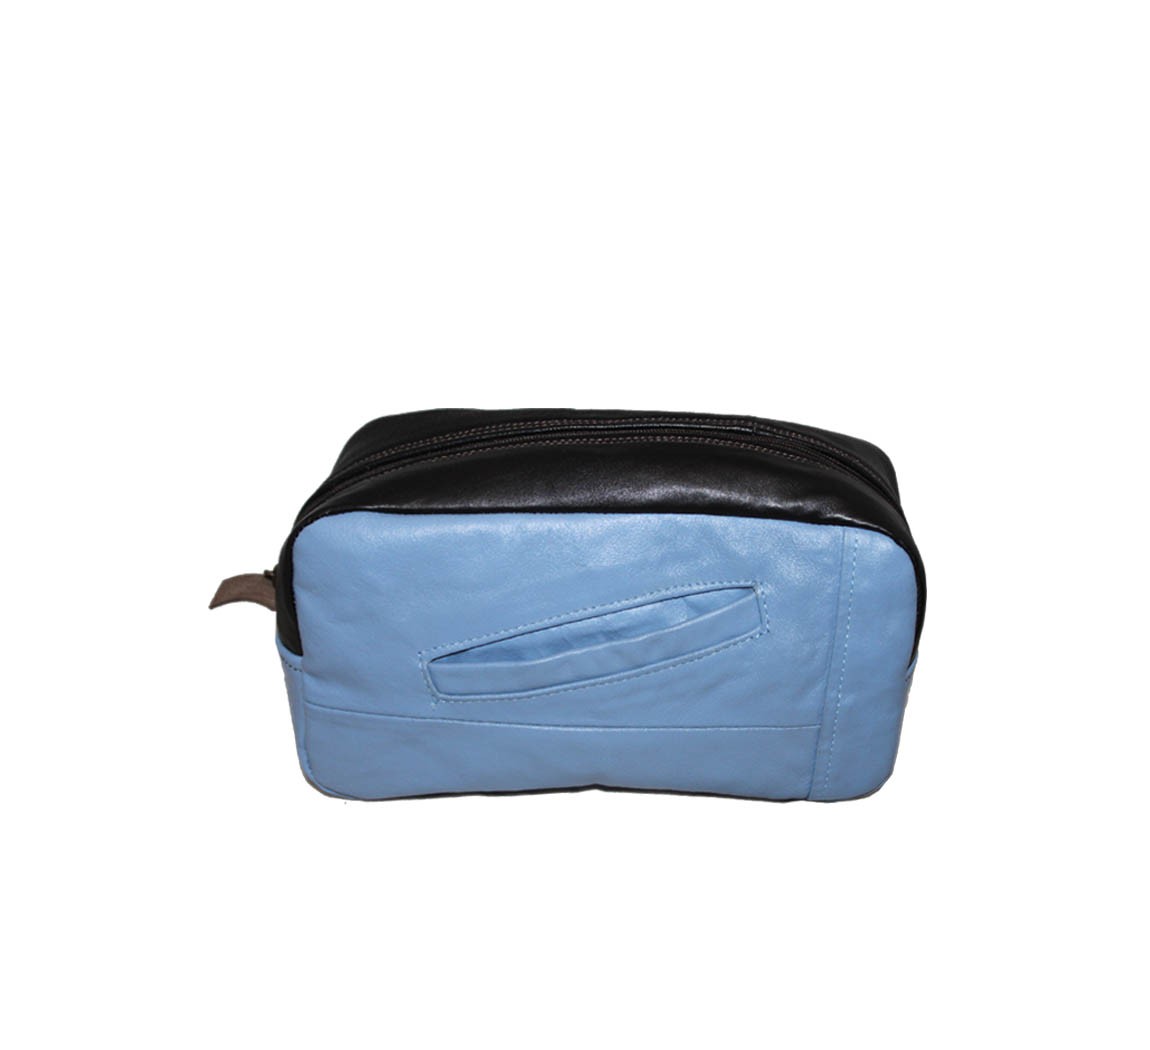 Wash bag Jacket trousse de toilette homme Wash bag Jacket